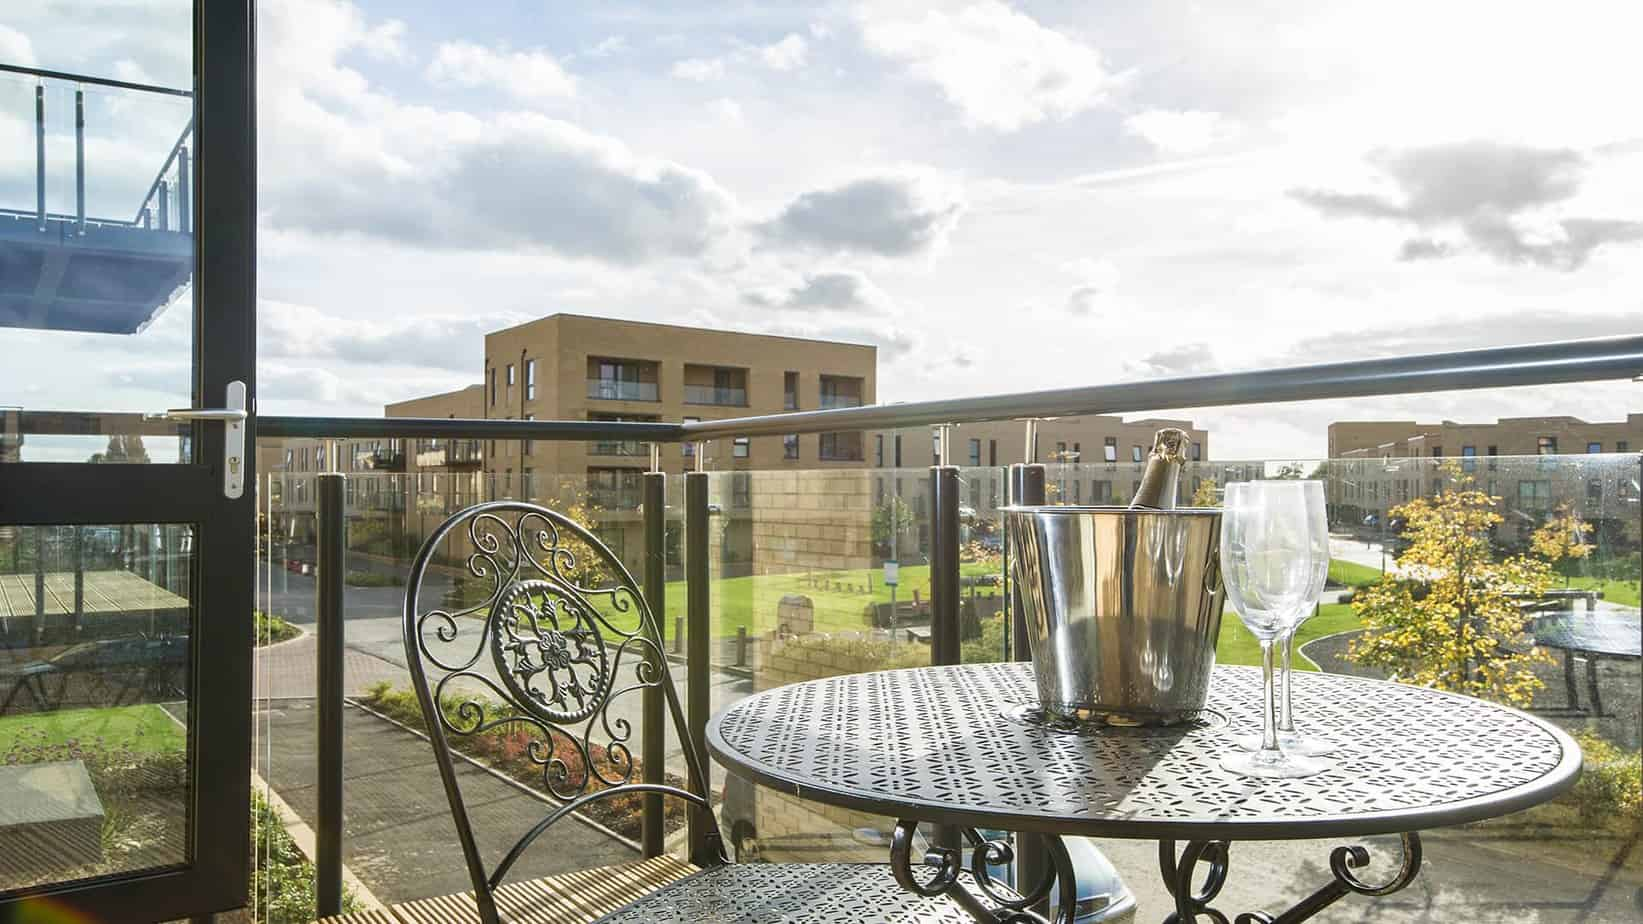 Tailored Stays Dehavilland house serviced apartment balcony view